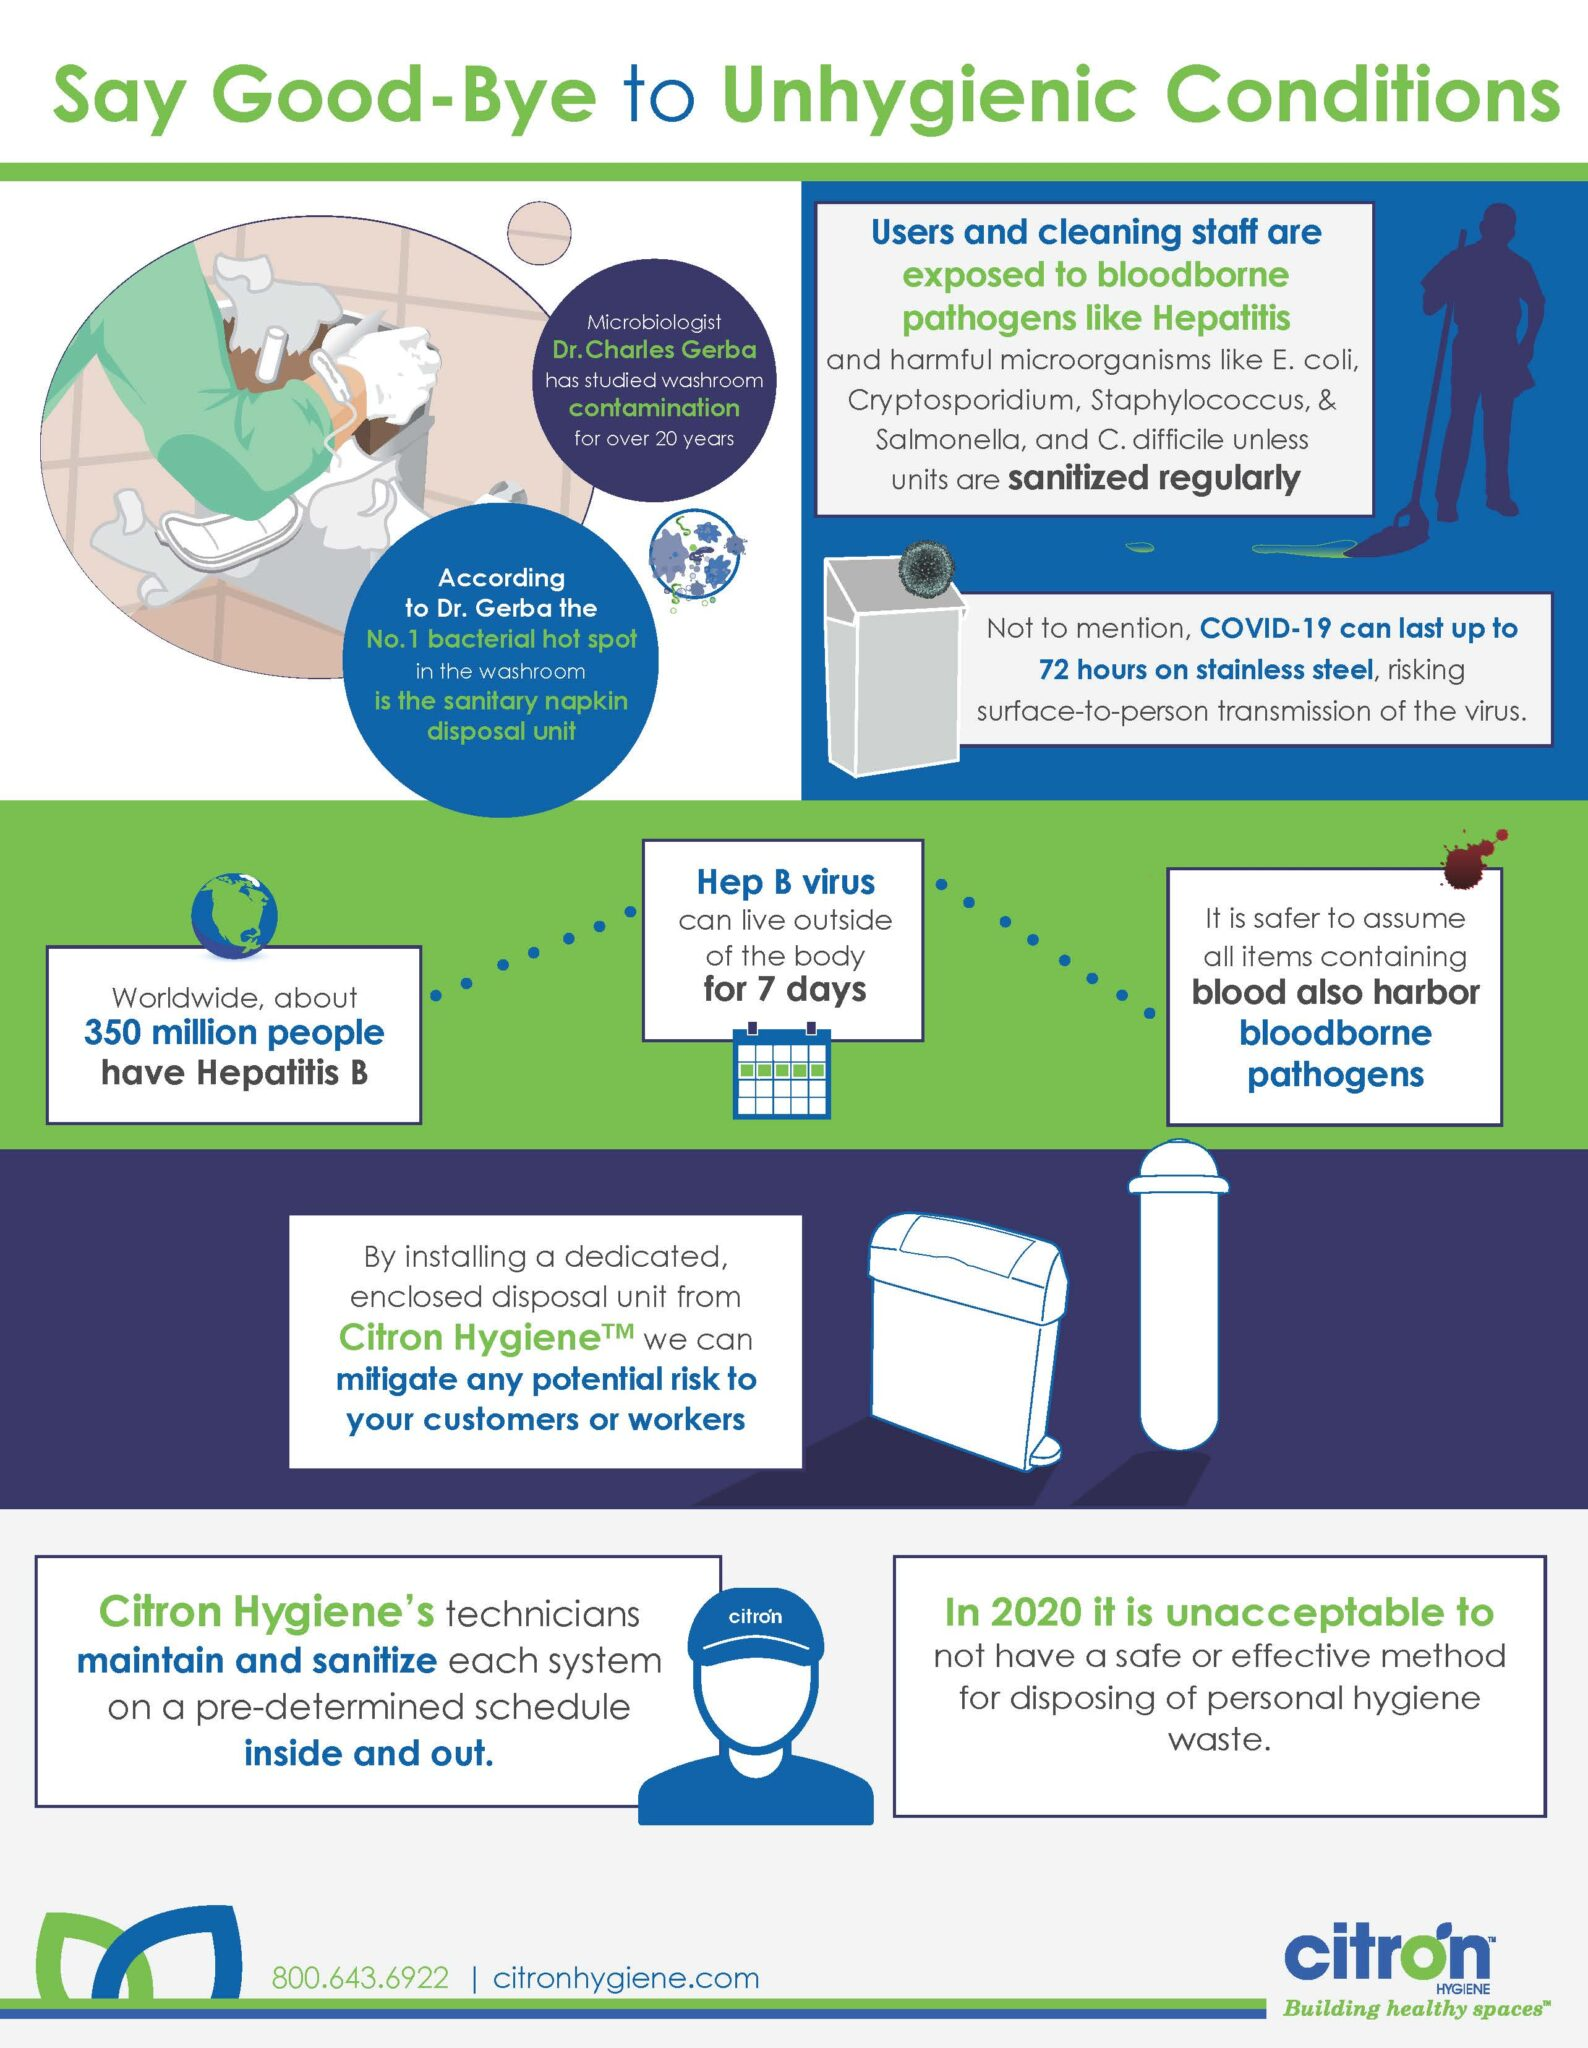 infographic on cross contamination and reducing infection/germs inside sanitary waste units